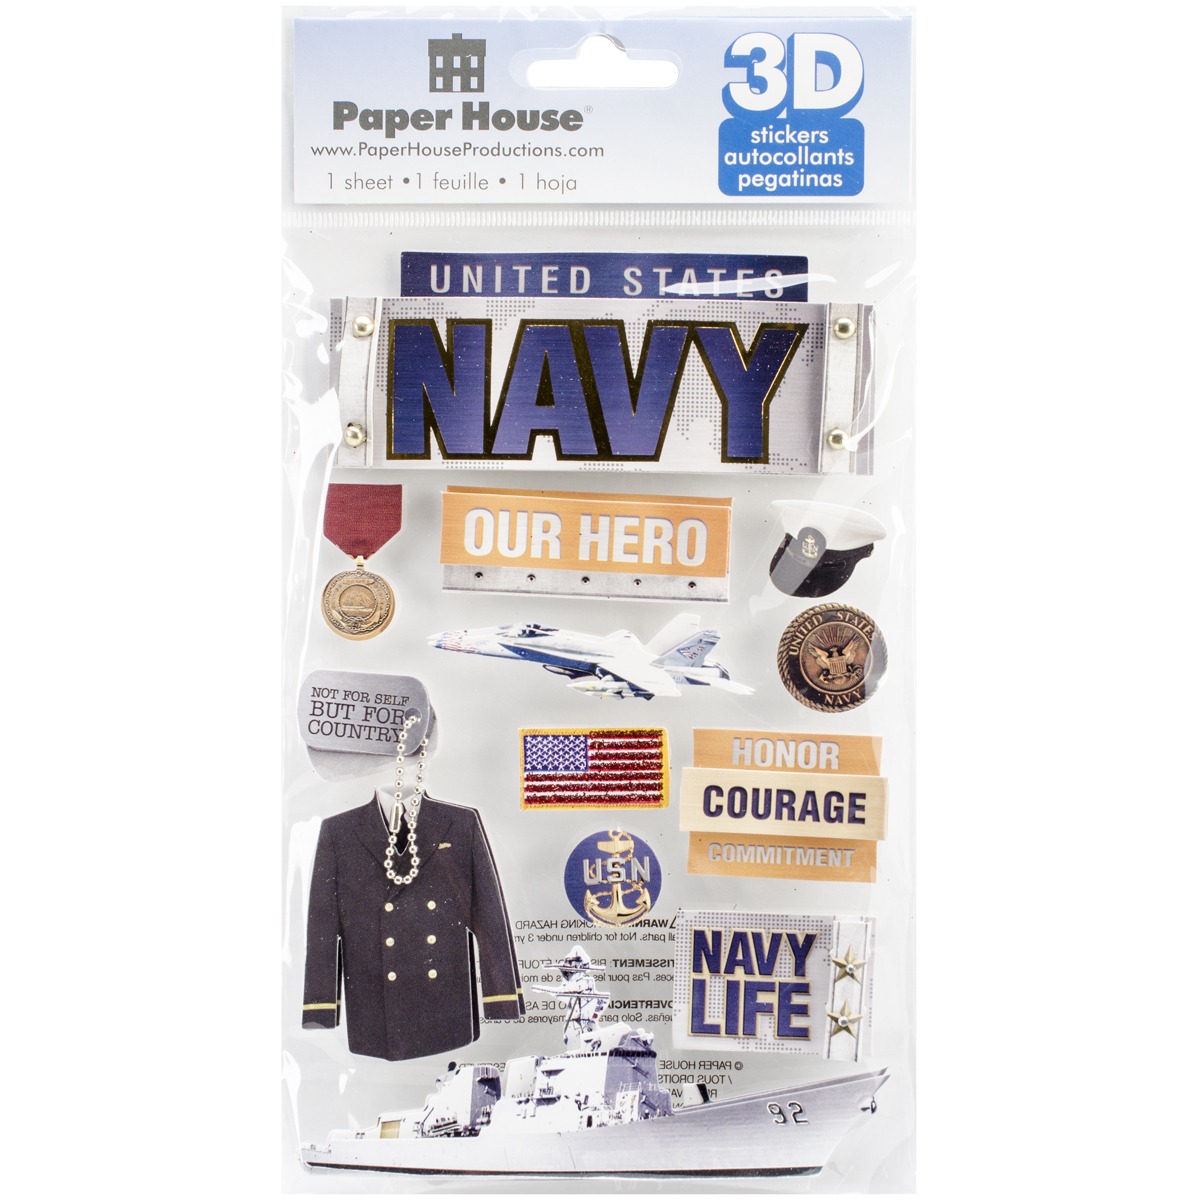 NAVY      -3D STICKERS